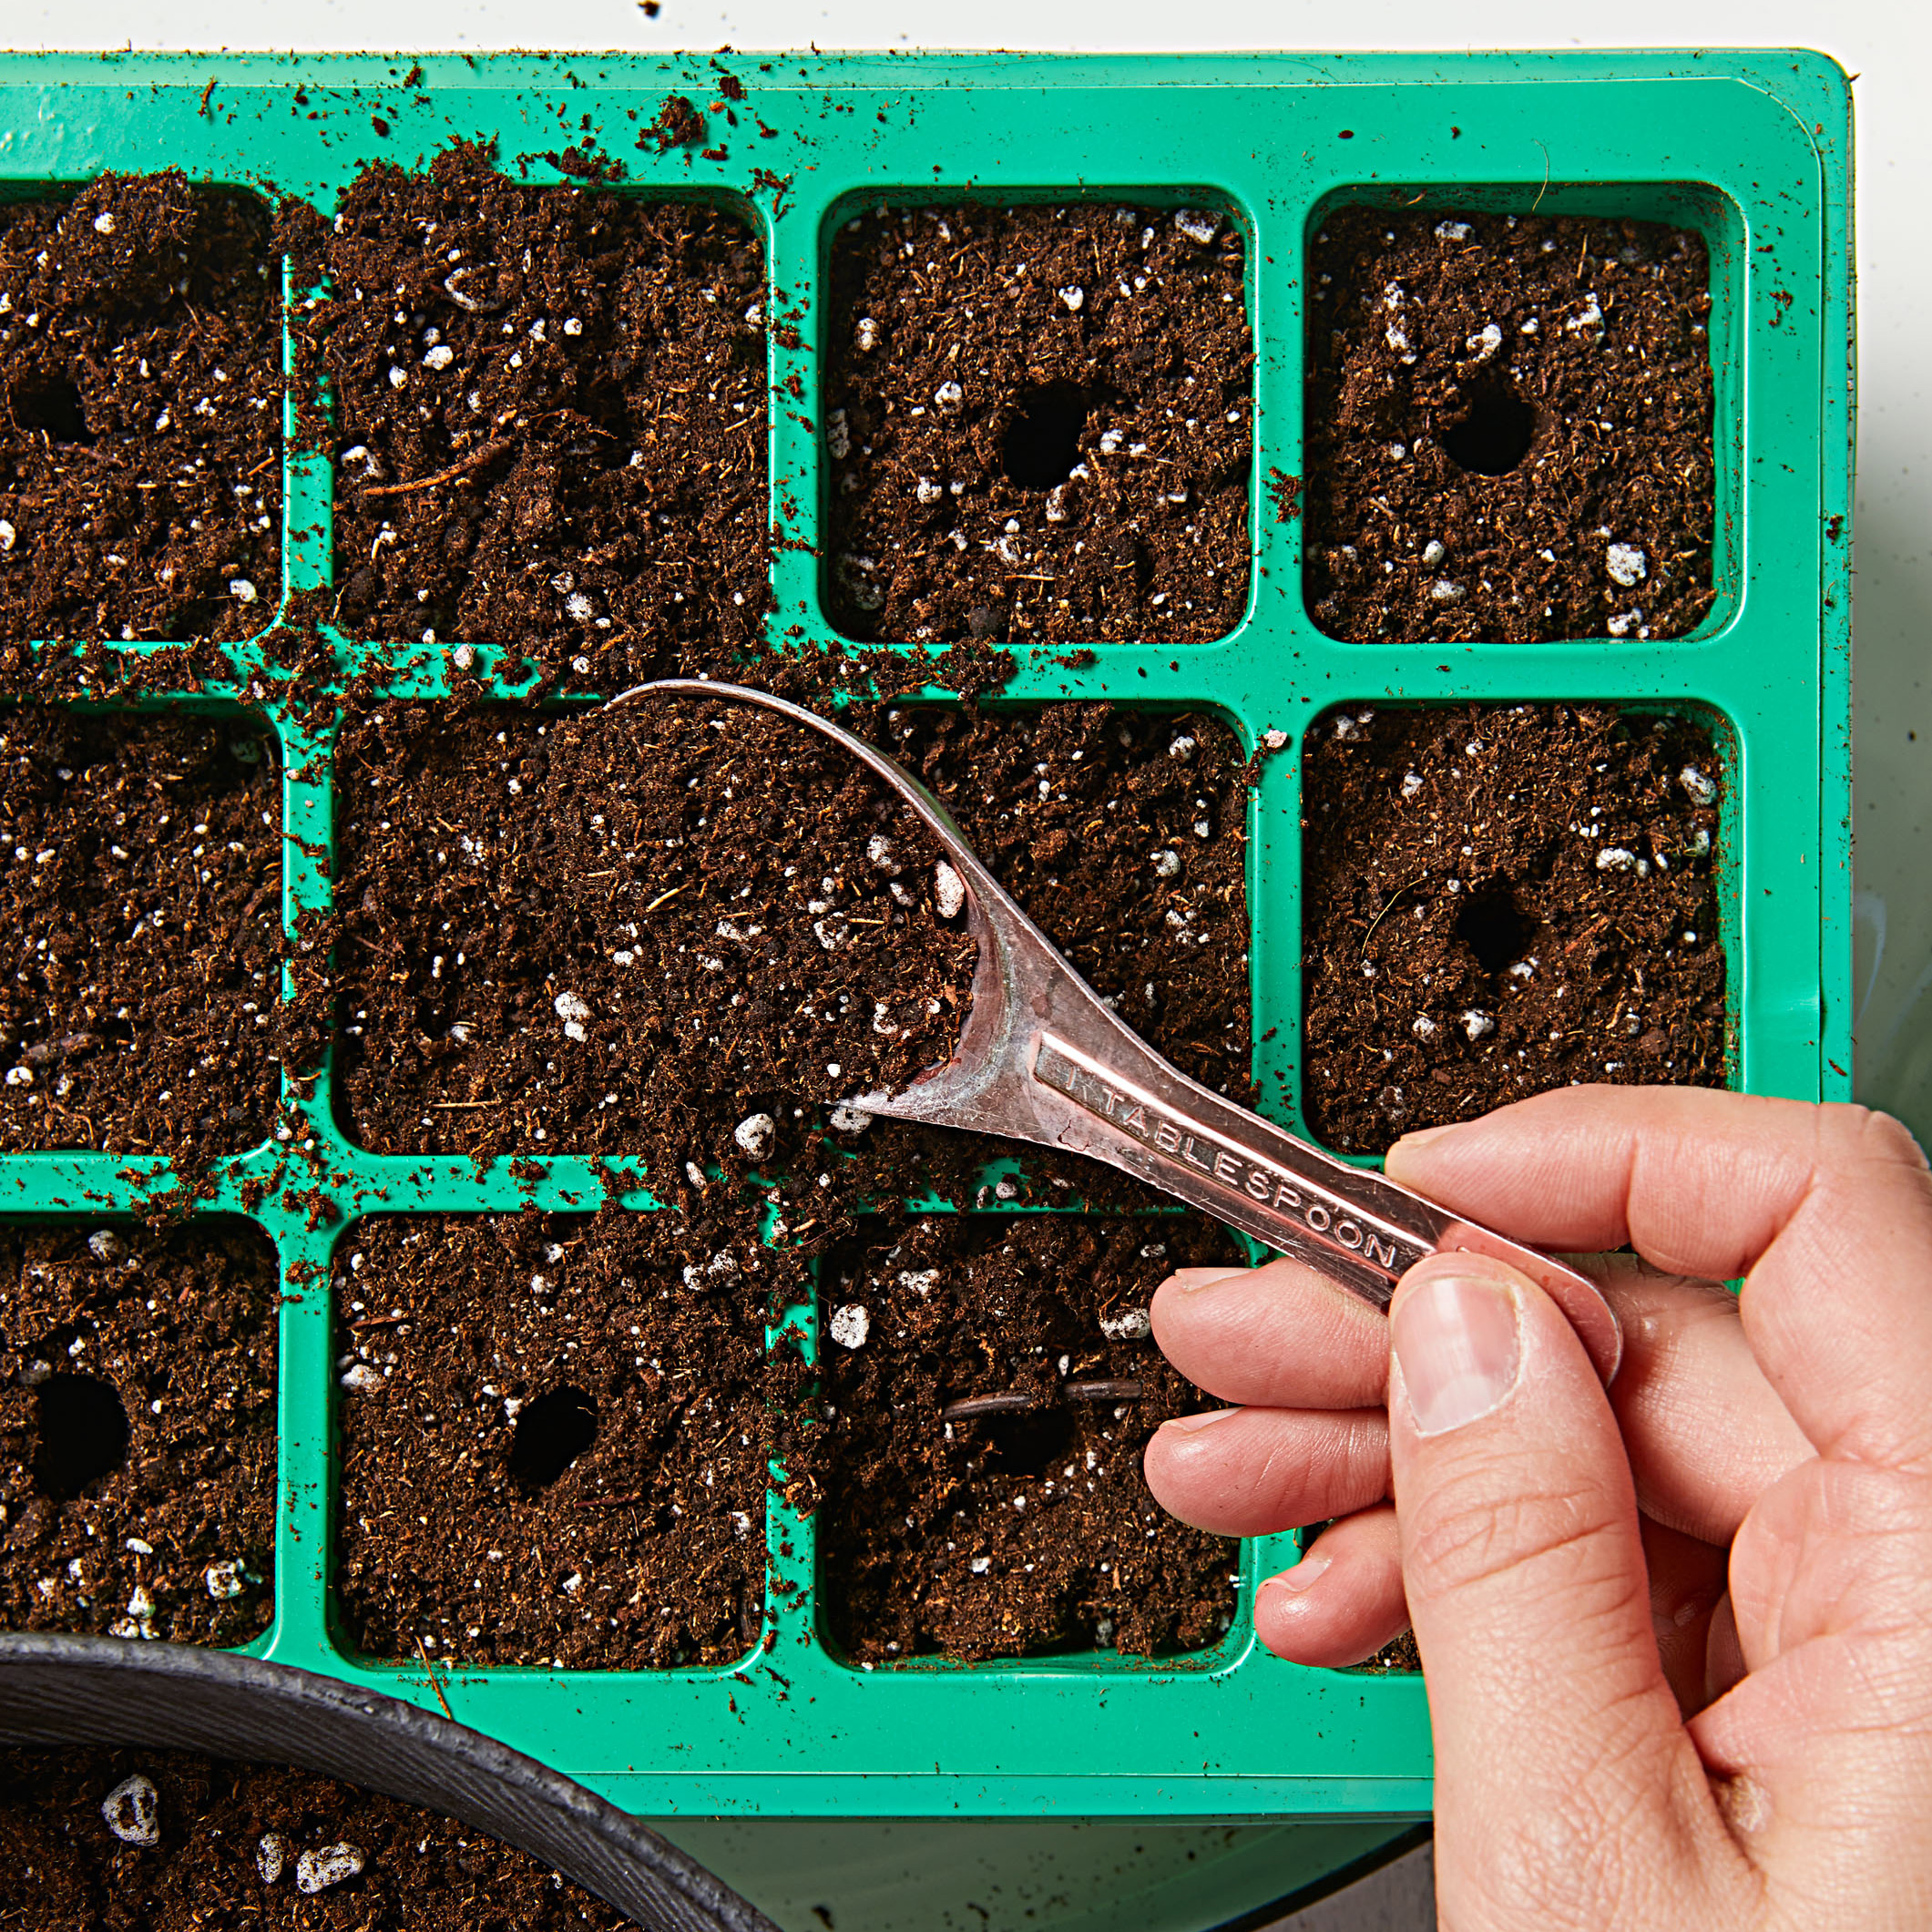 How to start seeds-Step 4